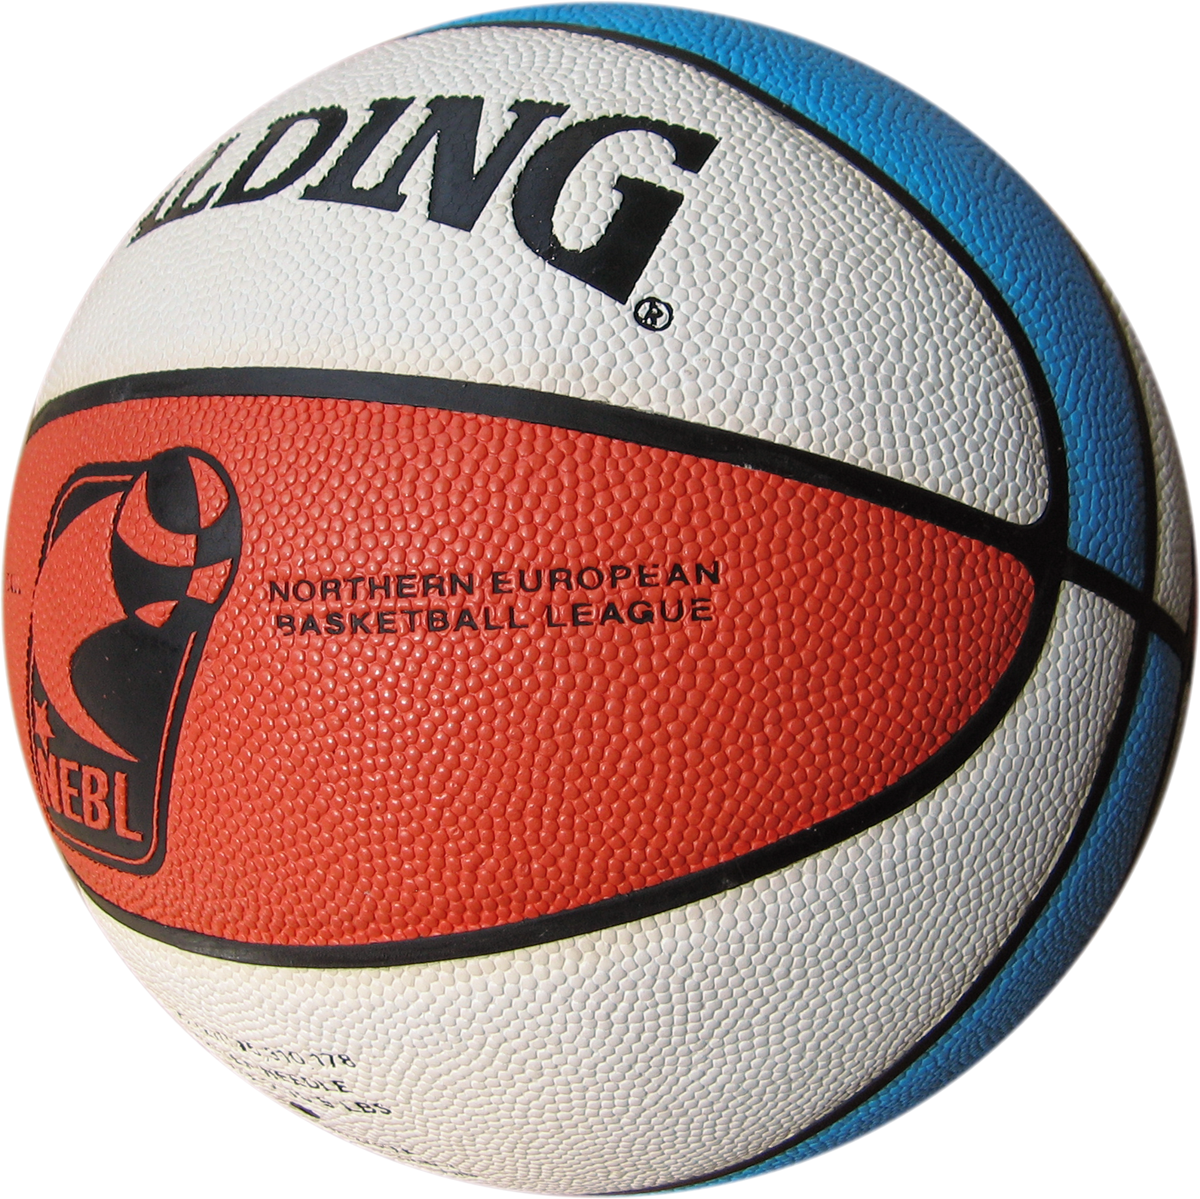 Outdoor kids basketball game clipart graphic Spalding Basketball Balls | Basketball Balls | Pinterest graphic